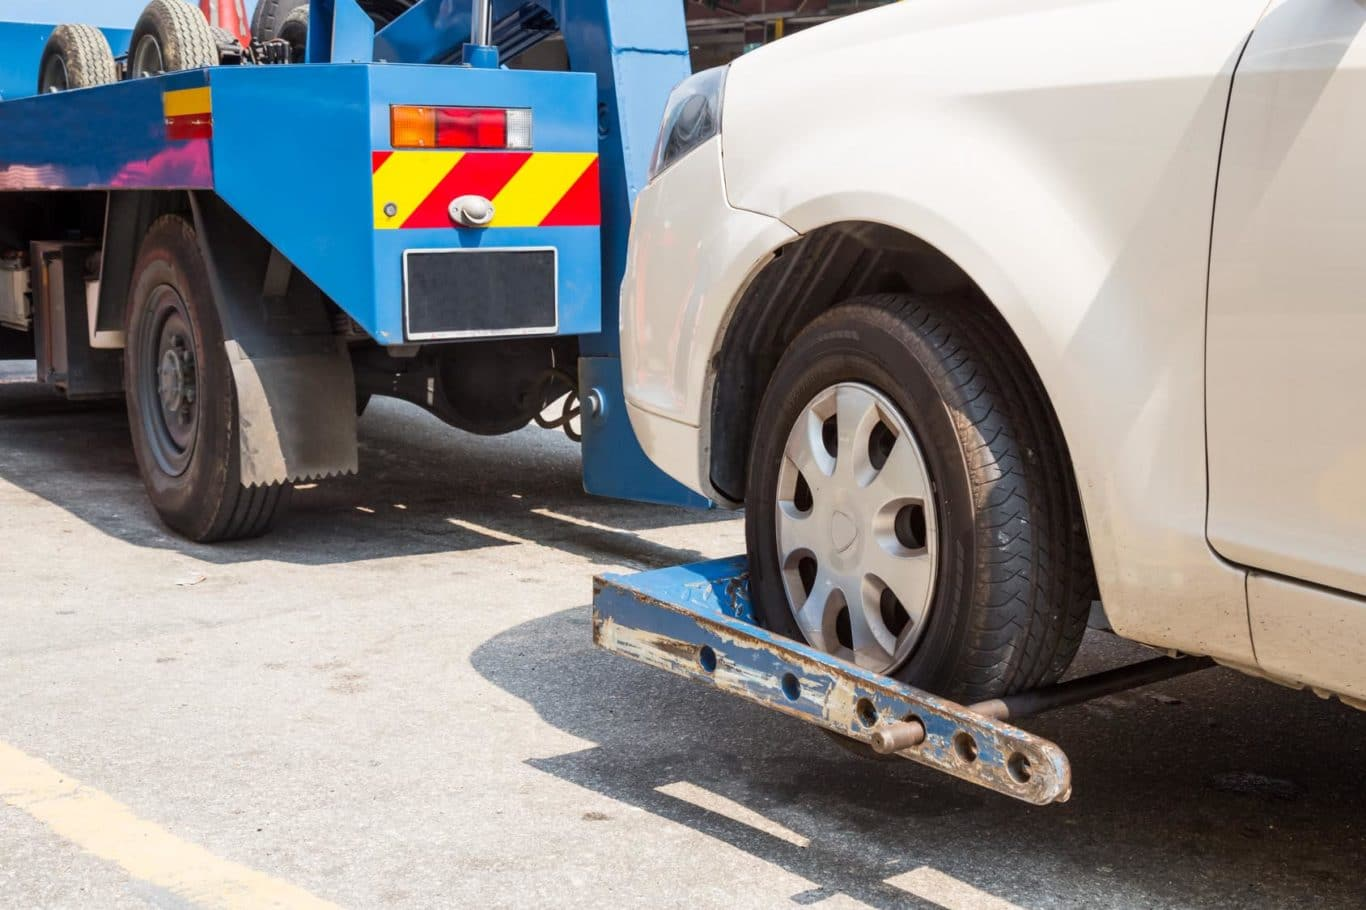 Caragh expert Car Towing services